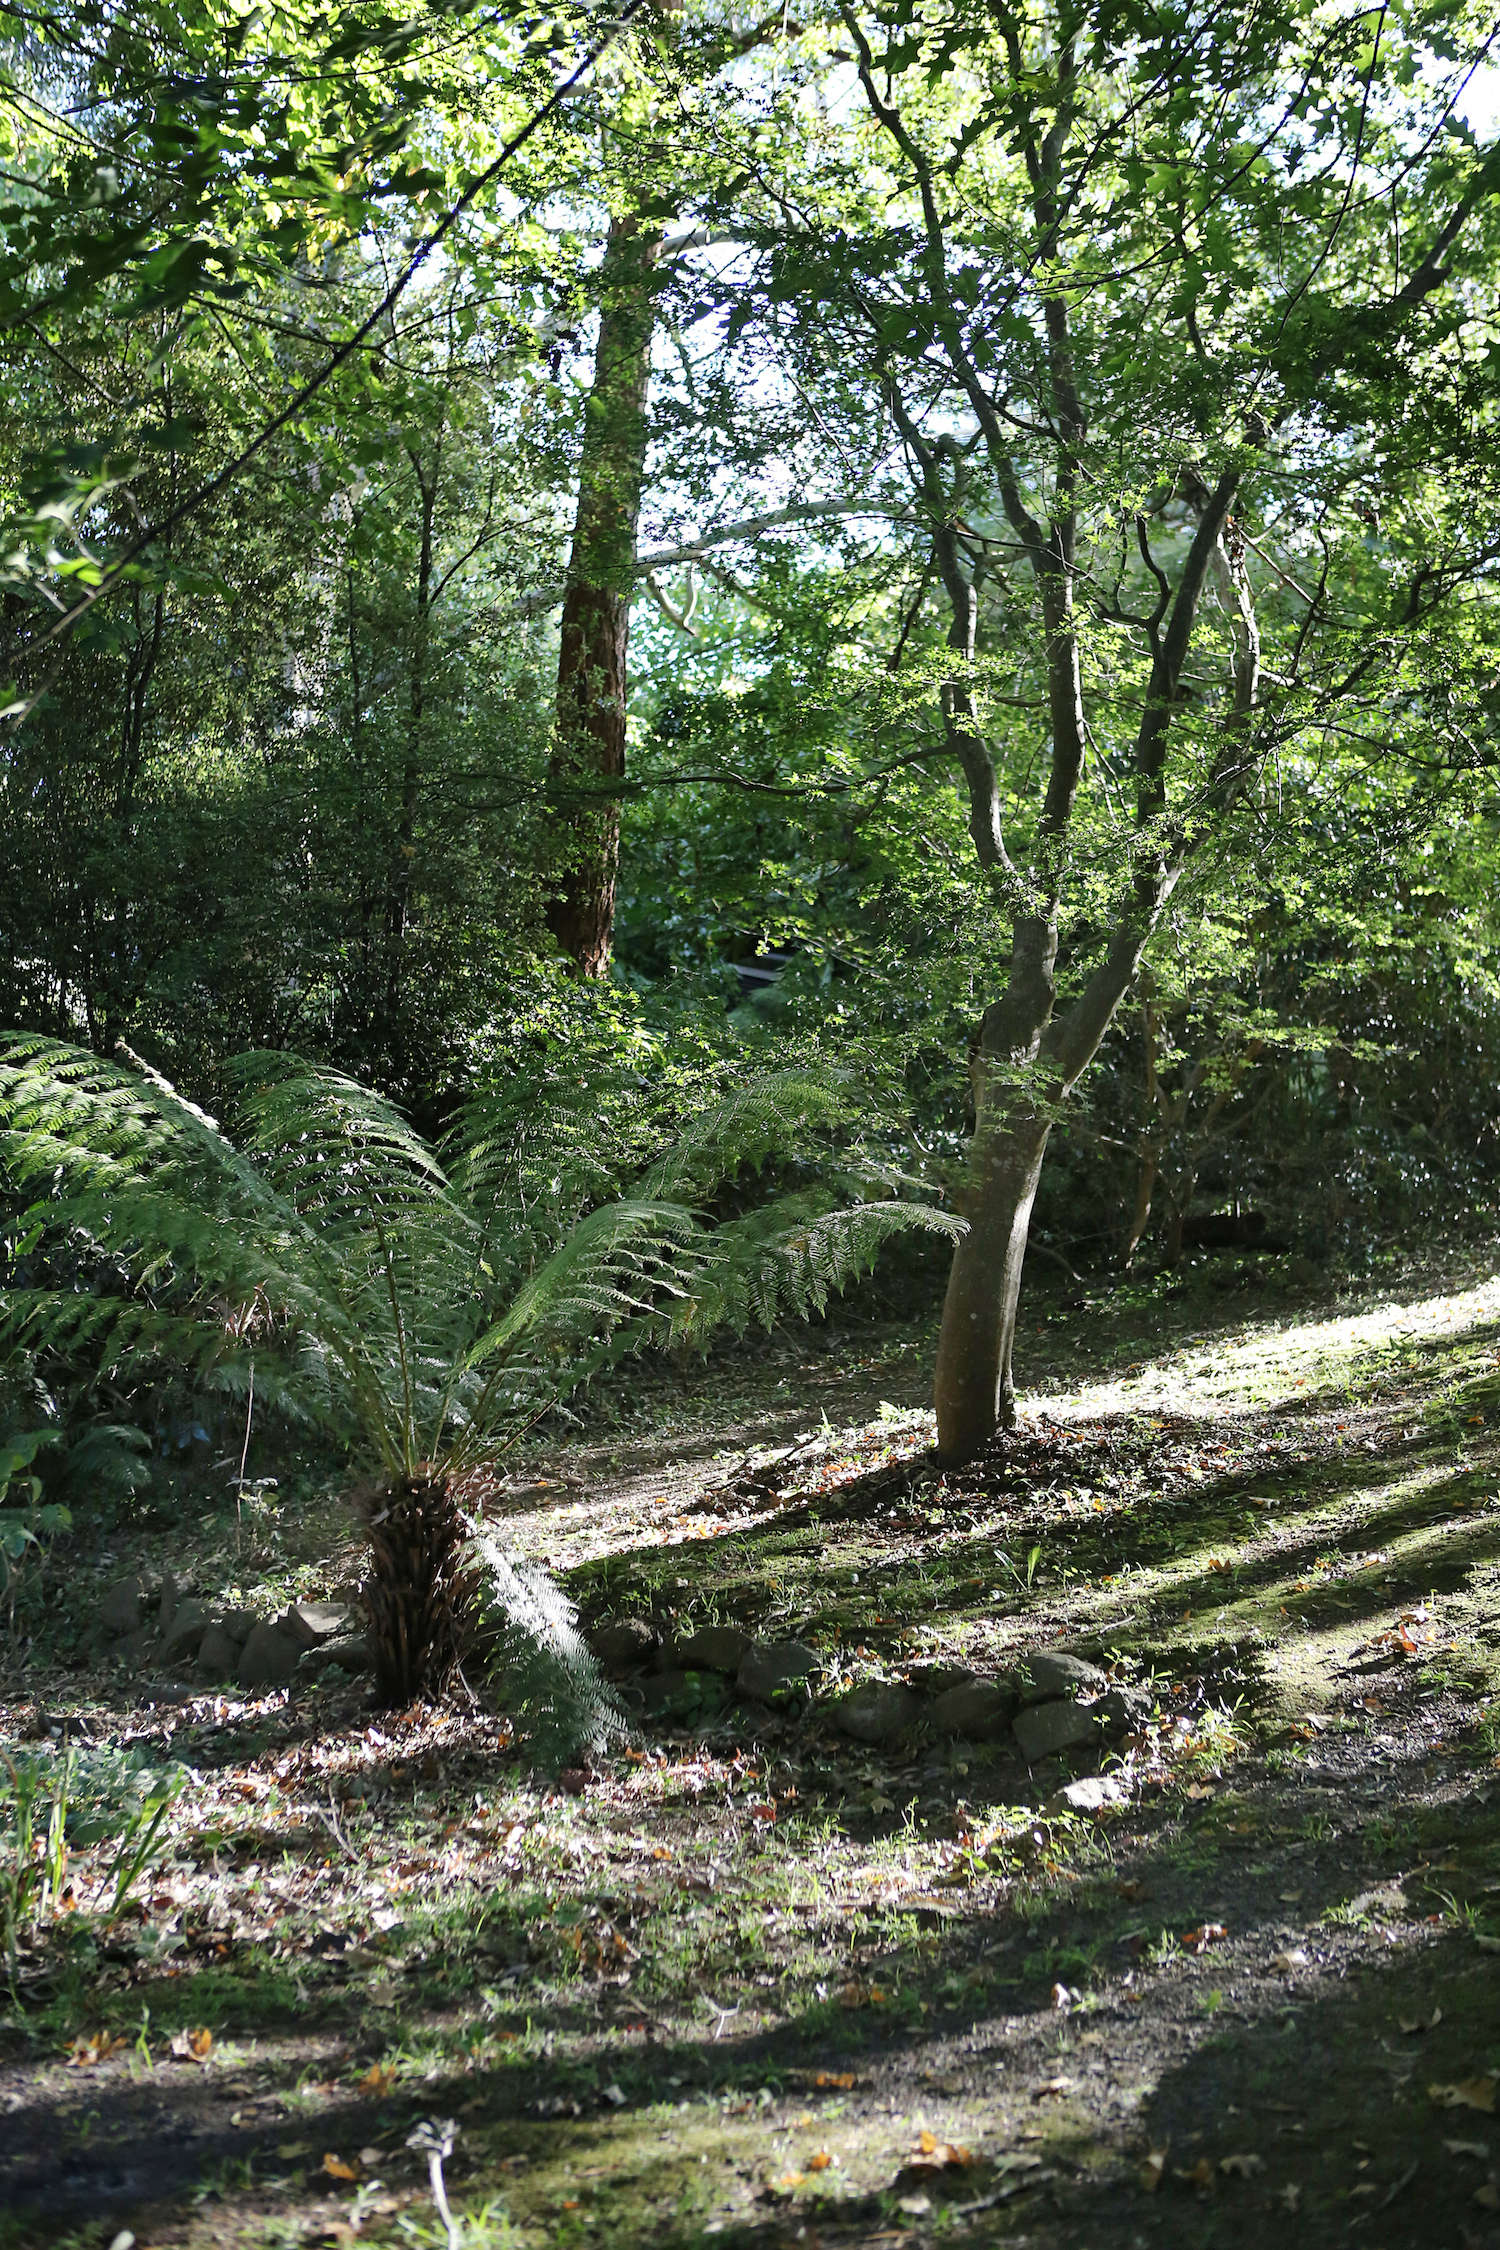 Jacky Winter Gardenssits in the Dandenong Ranges, a low mountain range wherelower altitudesare covered in temperate rainforest of mountain ash trees and dense undergrowth of ferns. Here, oak trees and a tree fern on the edge of the property.